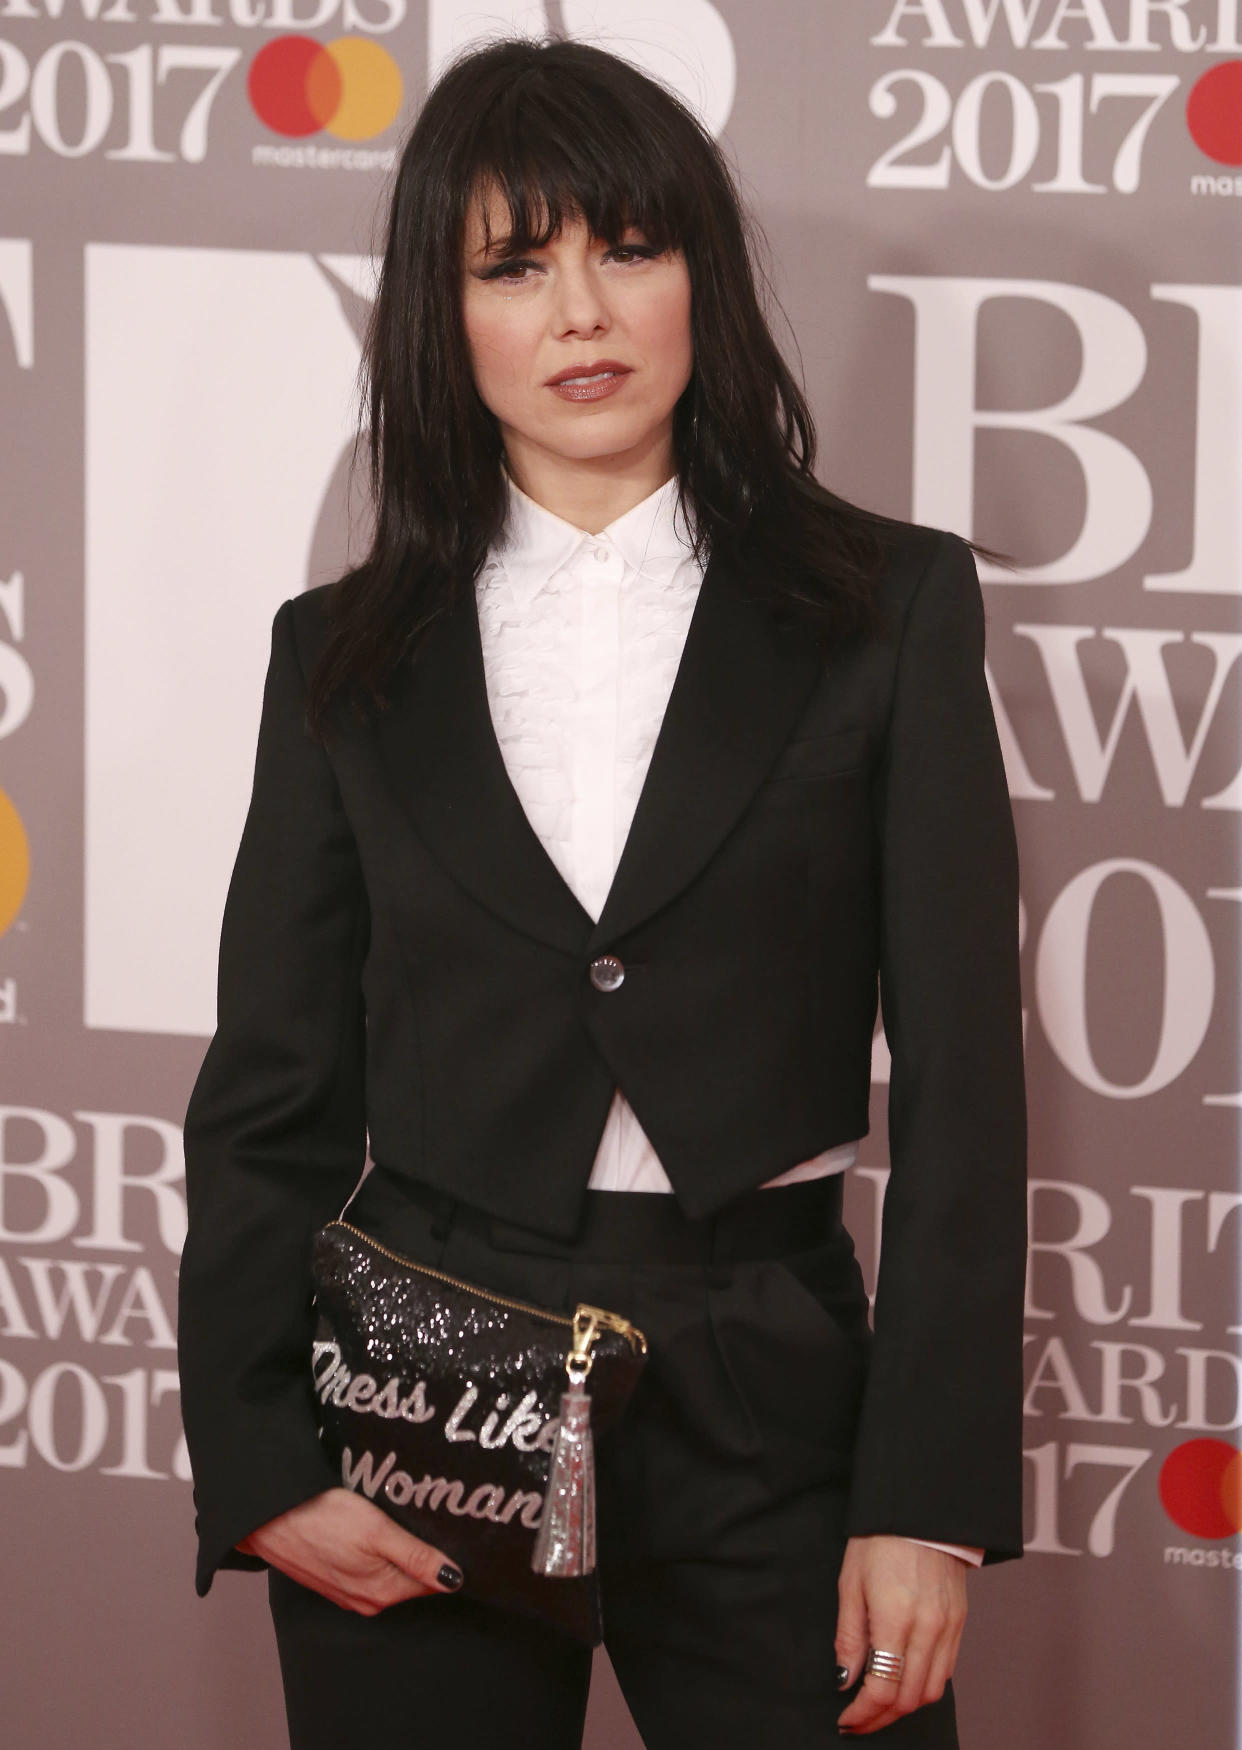 Imelda May arrives for the Brit Awards at the O2 Arena in London, Britain, February 22, 2017.  REUTERS/Neil Hall EDITORIAL USE ONLY. FOR EDITORIAL USE ONLY. NOT FOR SALE FOR MARKETING OR ADVERTISING CAMPAIGNS